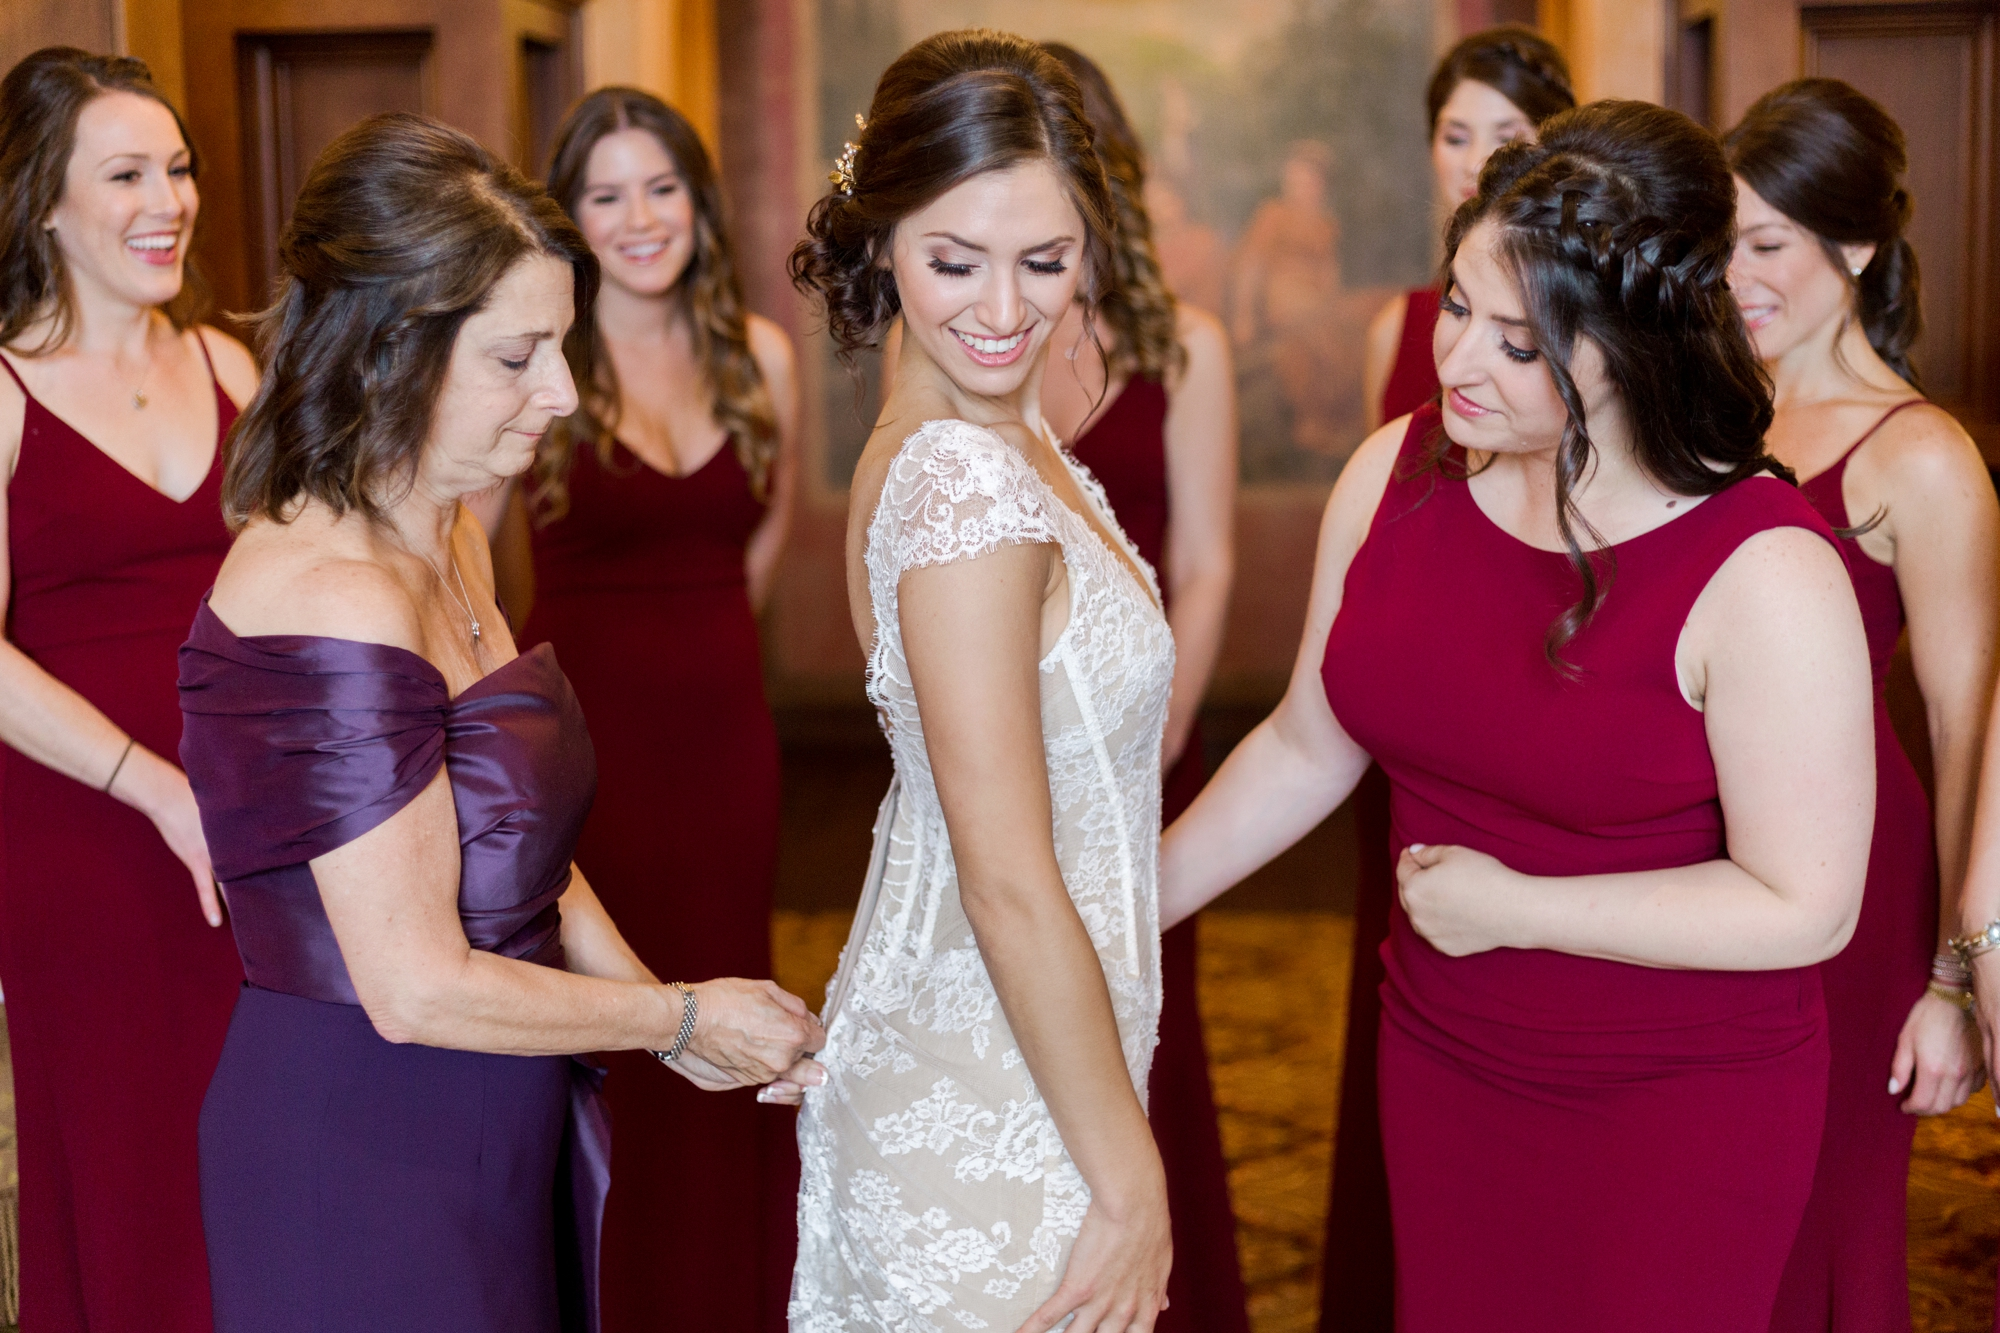 mom zips up bride